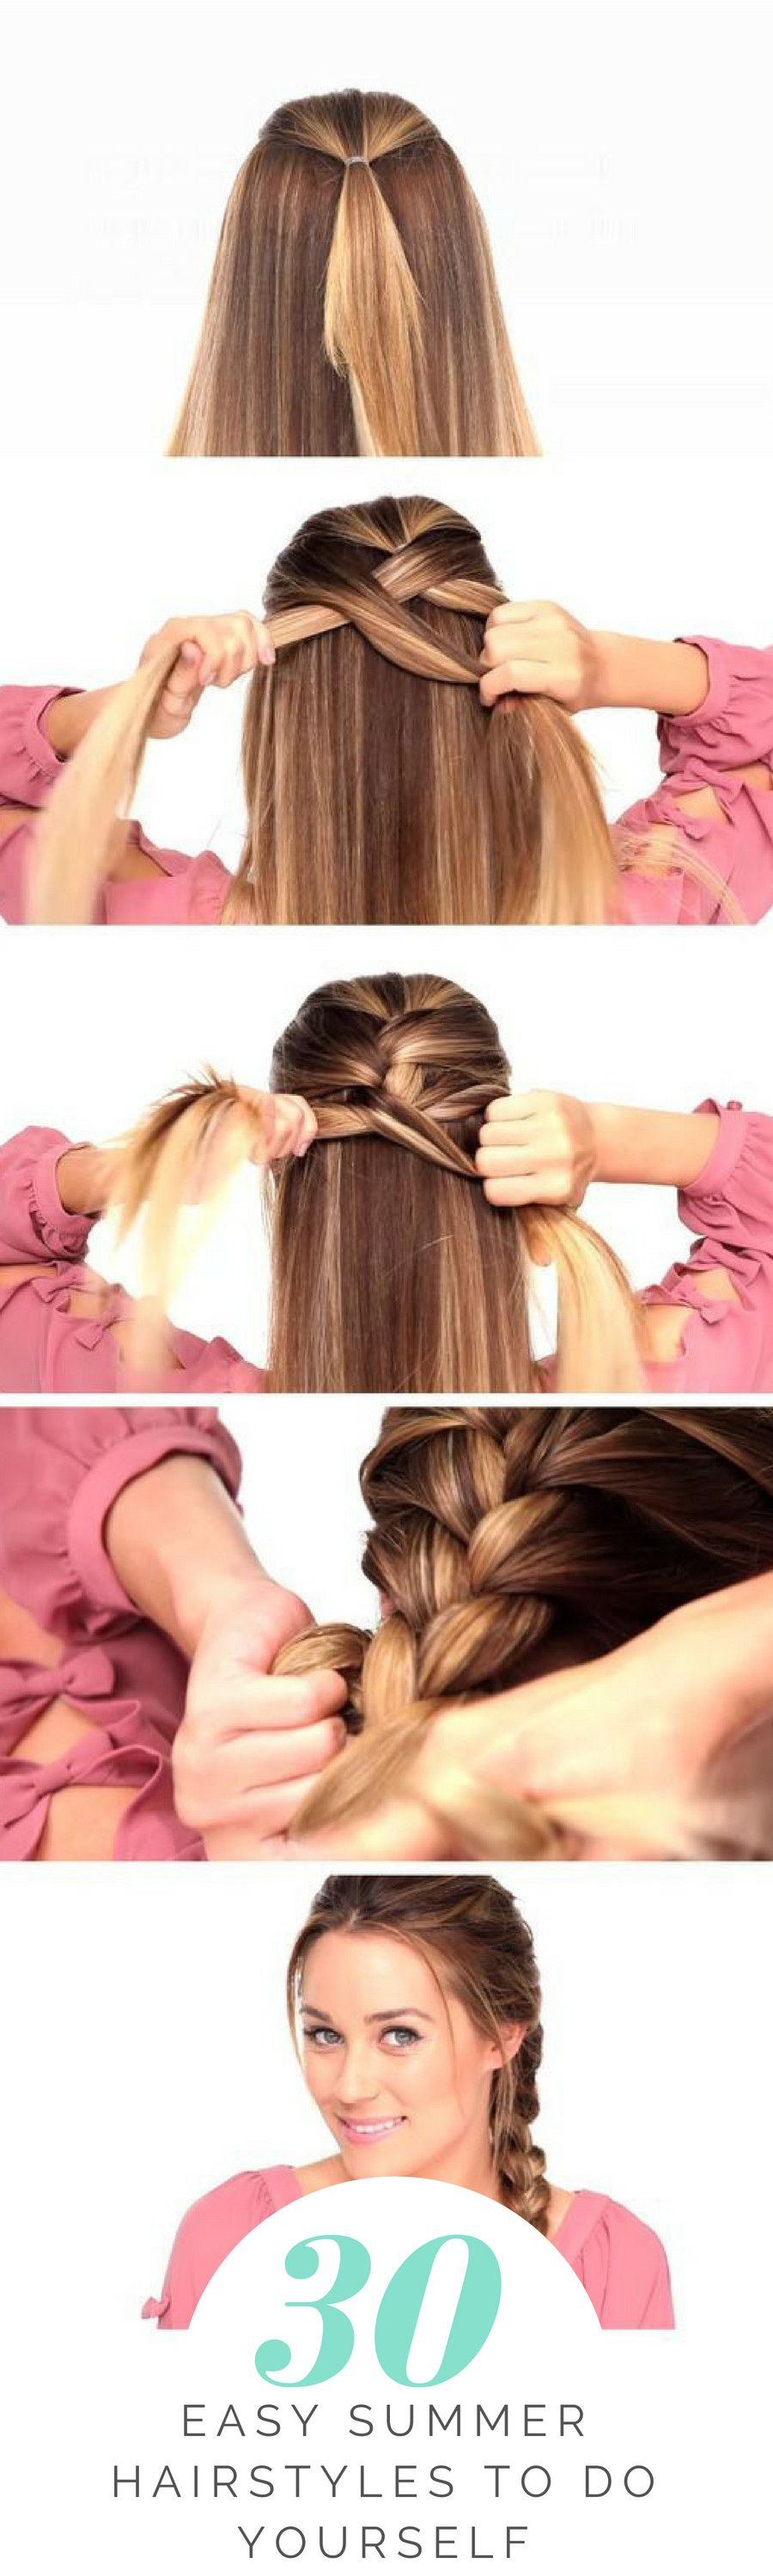 easy summer hairstyles to do yourself bow braid pinterest